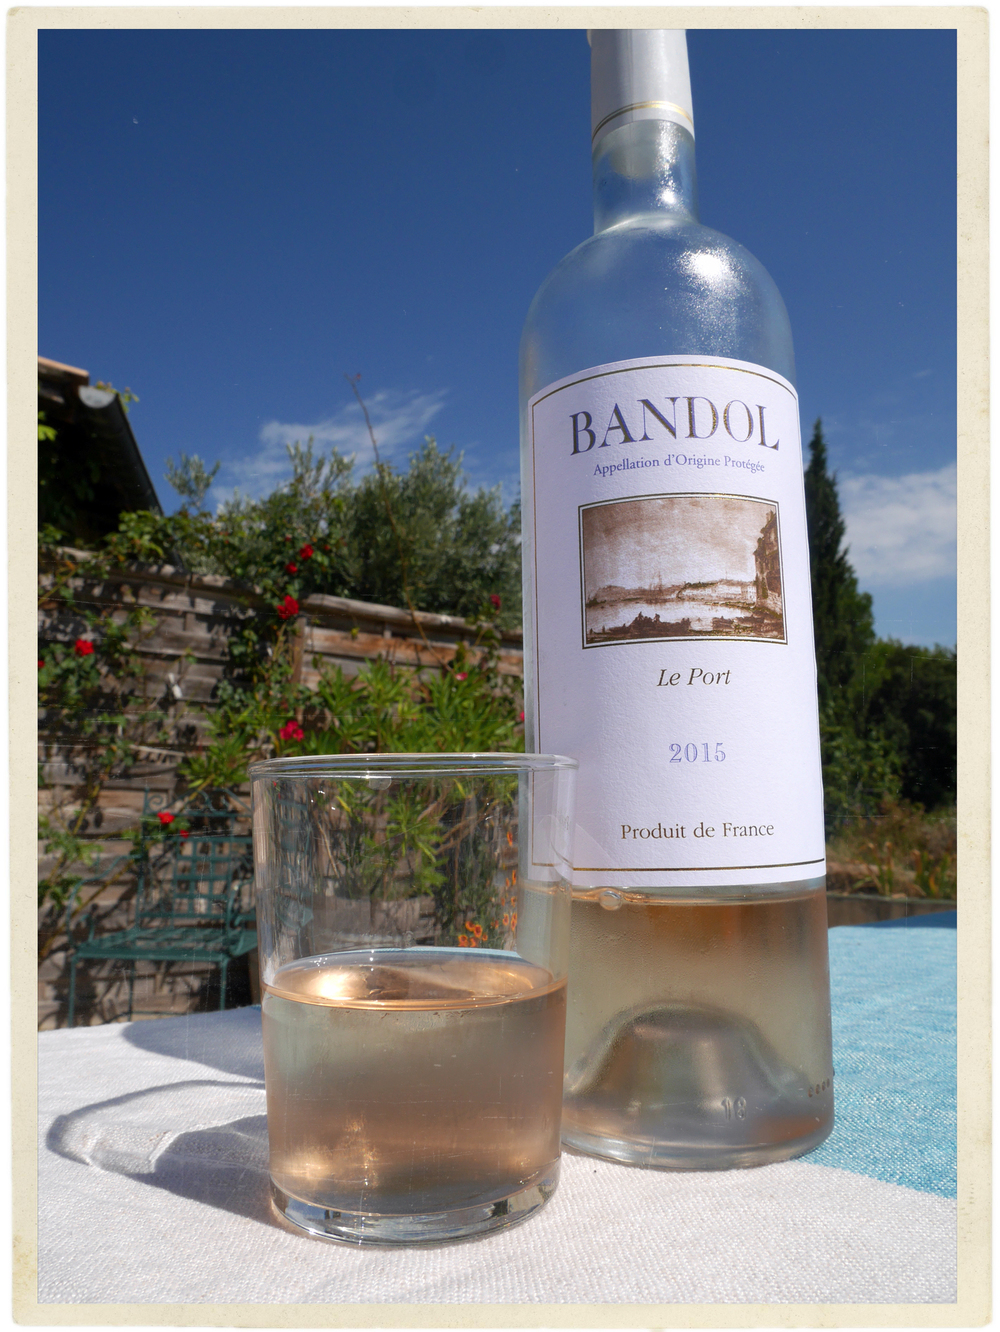 Blue skies and rosé - this is Provence.